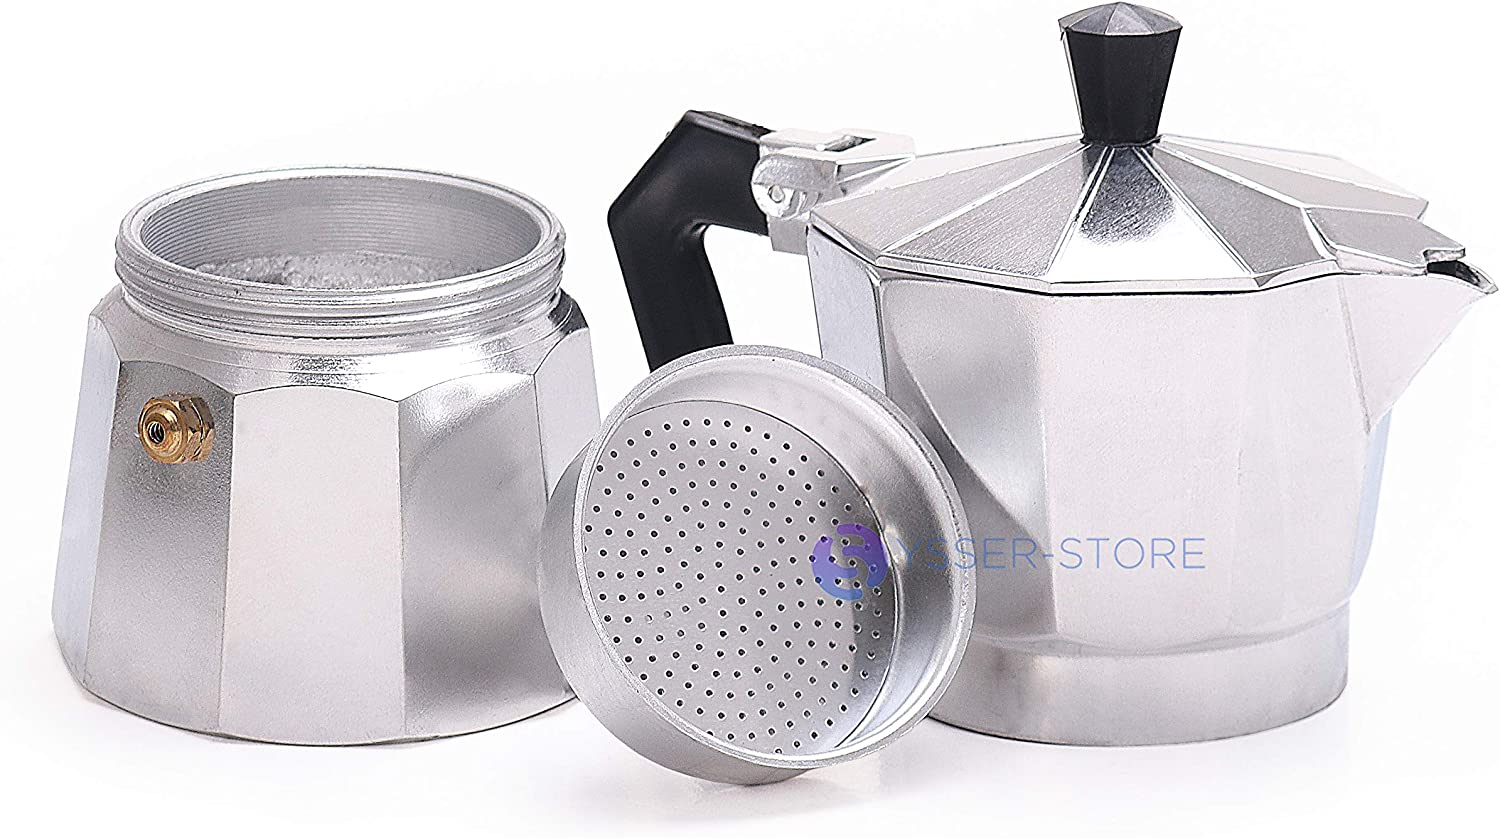 Amazon.com: Espresso Coffee Maker Cafetera Percolator Cubana ...